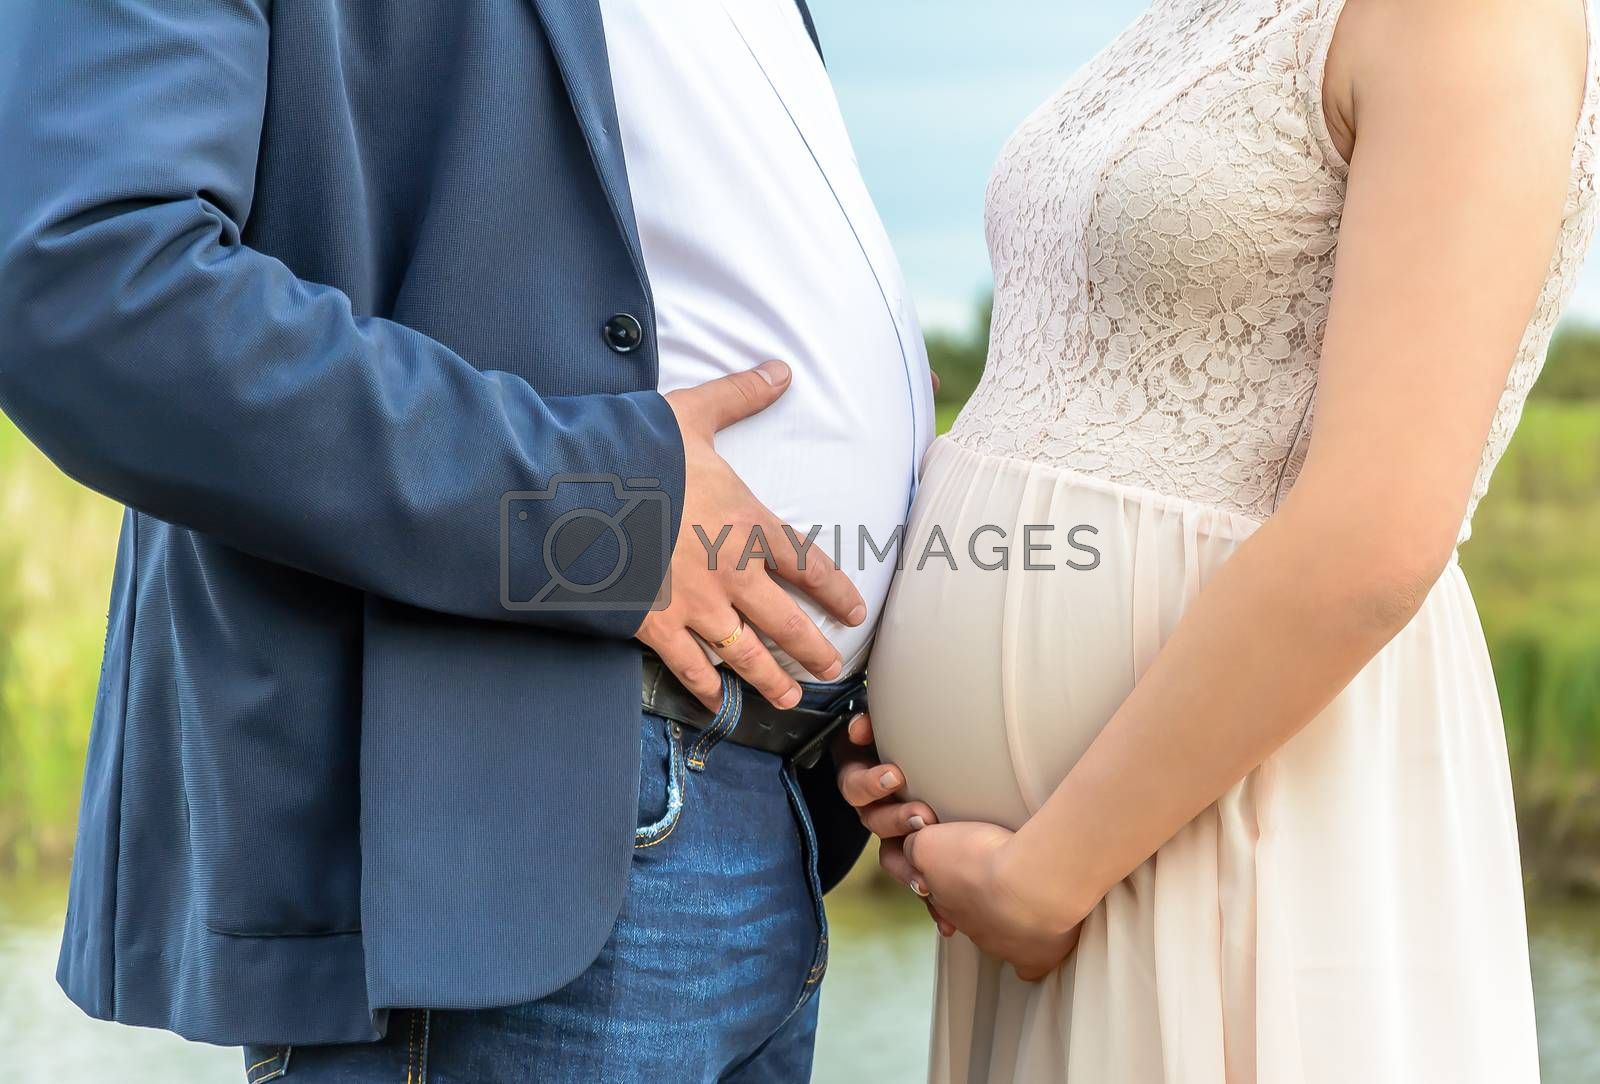 Photo of a pregnant woman and a potbellied man